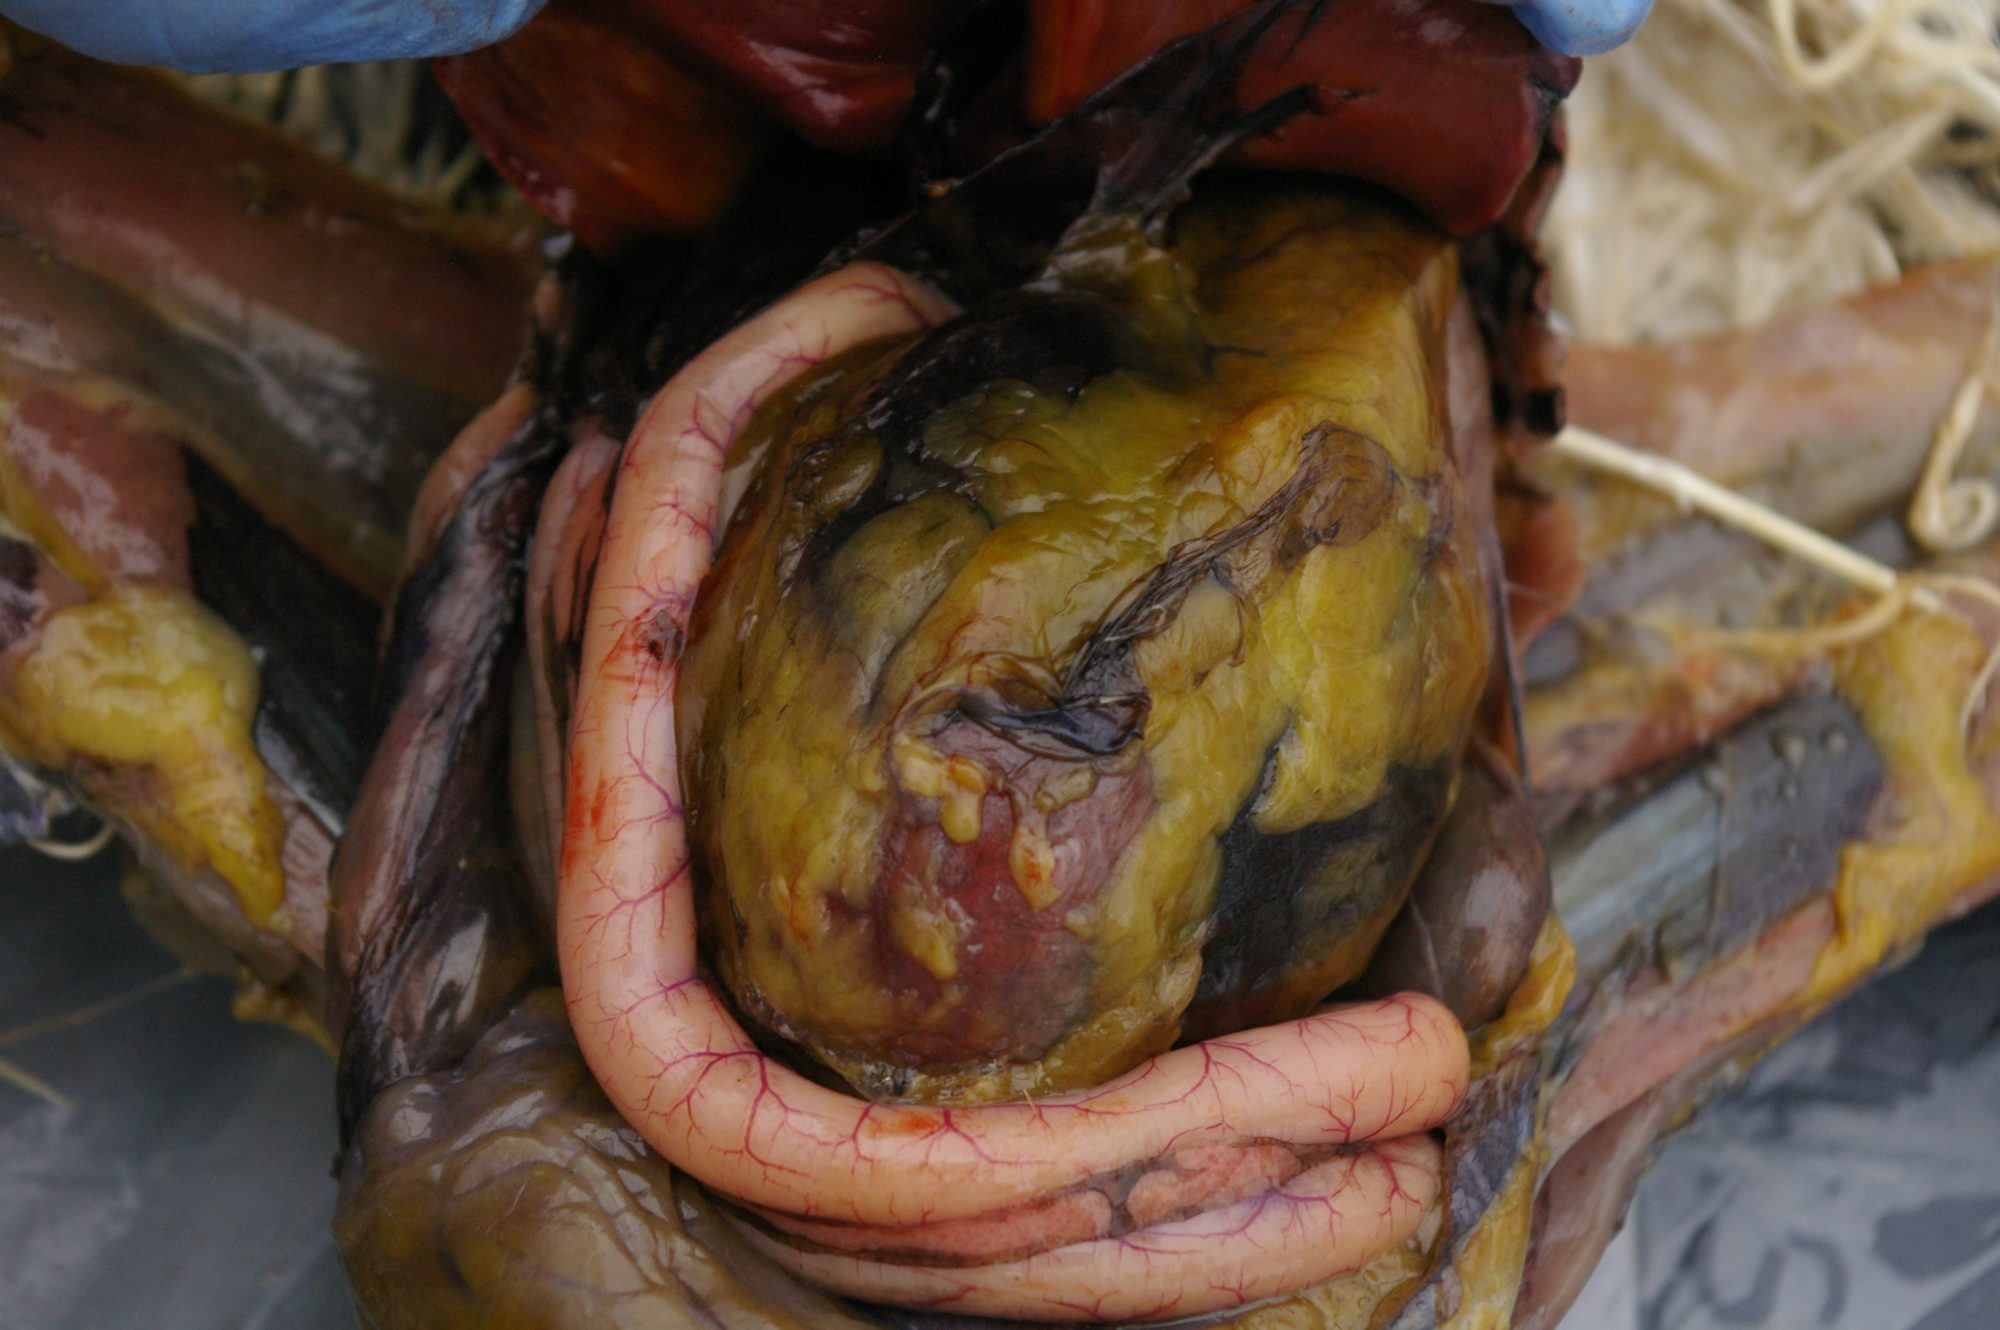 Cavity open. Large ball that's covered in fat deposits is the Gizzard. They are HUGE Pink is the Duodenum and pancreas